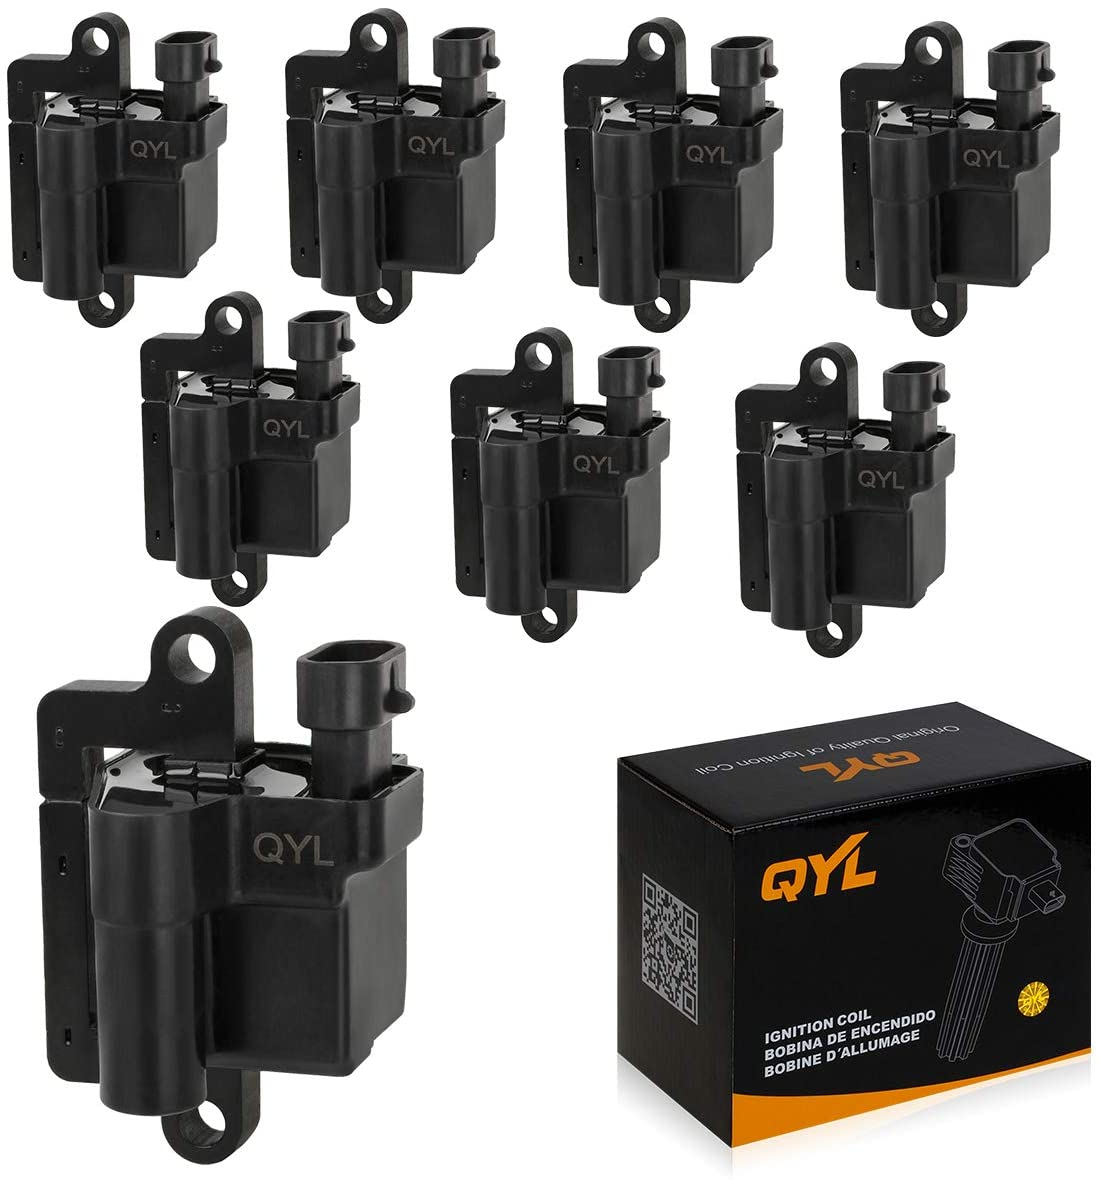 QYL Ignition Coil Pack – 1999 to 2009 Coil Pack